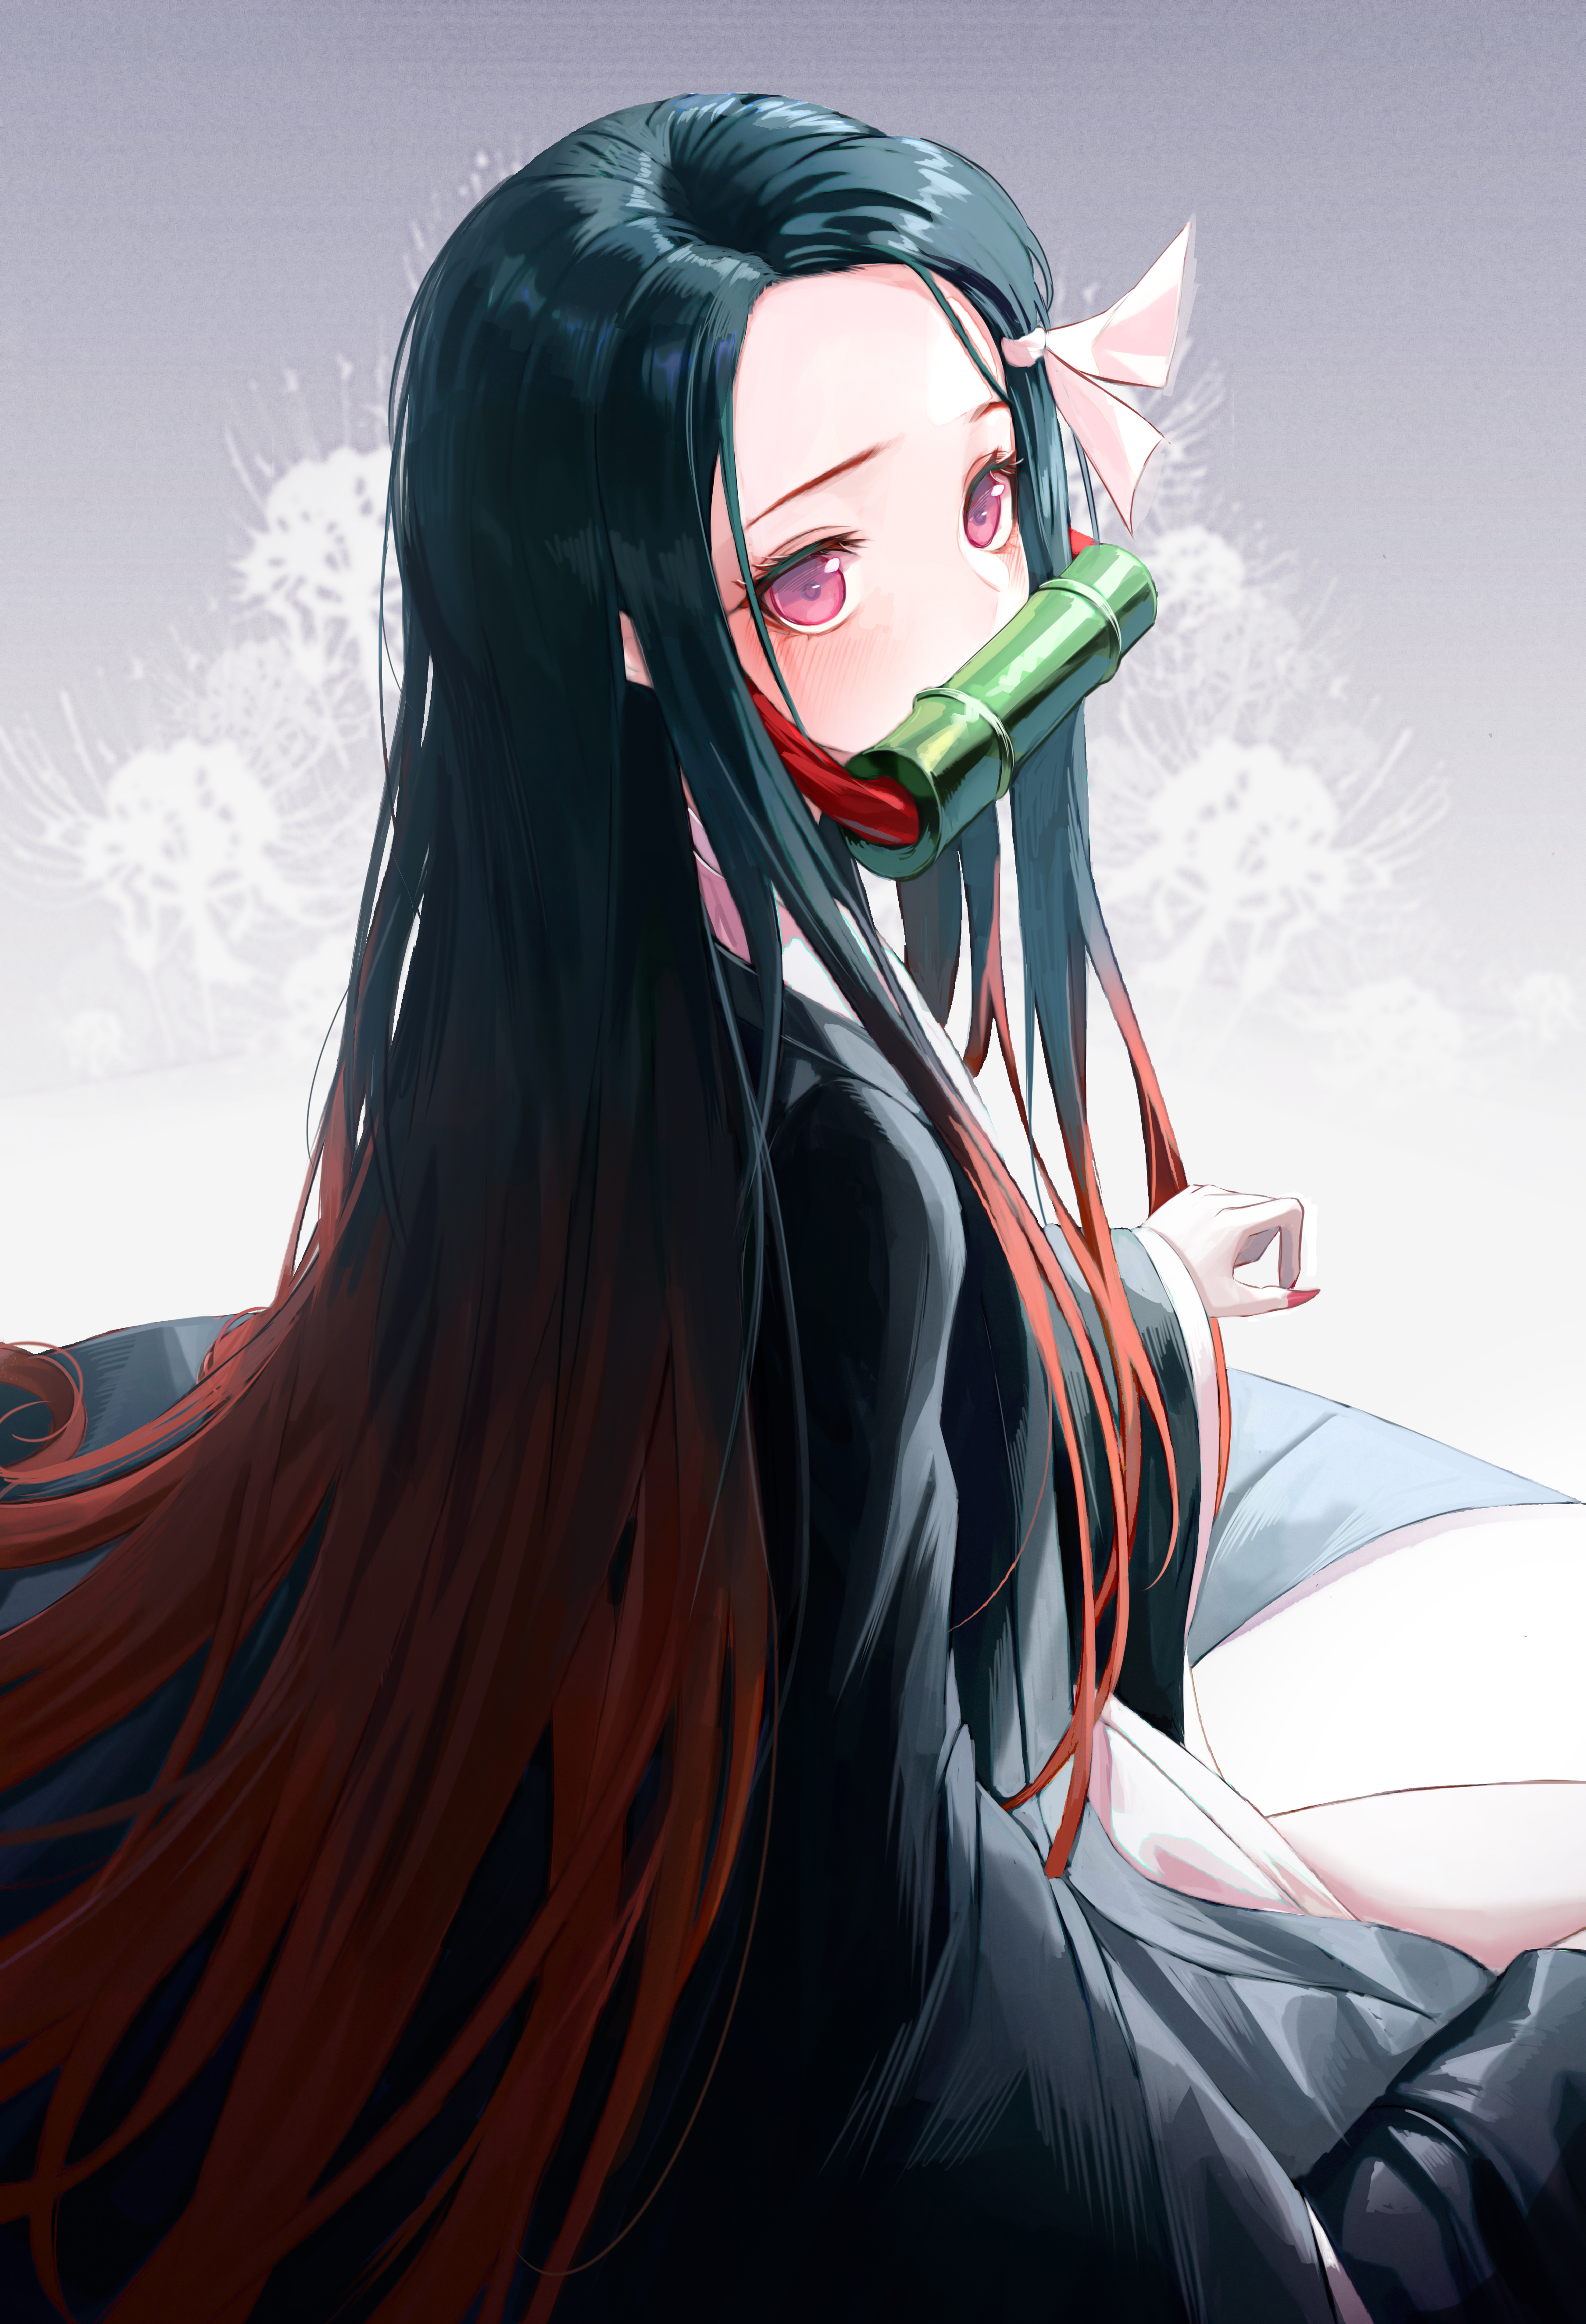 Long Hair Anime Girl Posted By Ethan Simpson